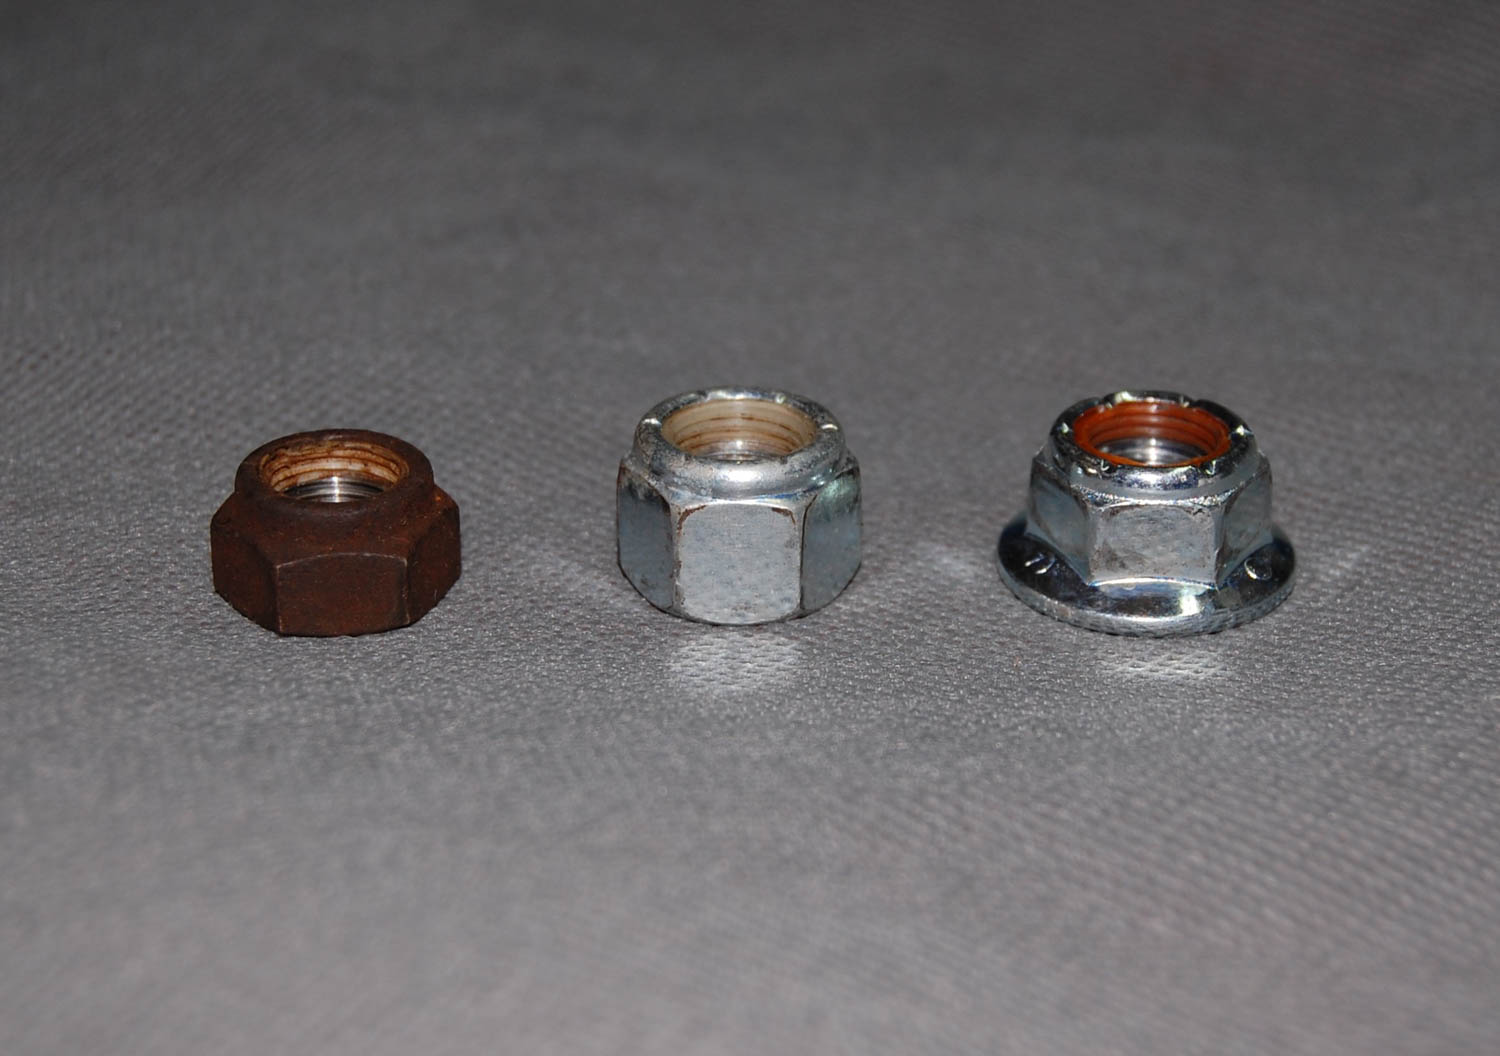 Left to right, the original, corner hardware store, and McMaster-sourced nyloc fasteners.